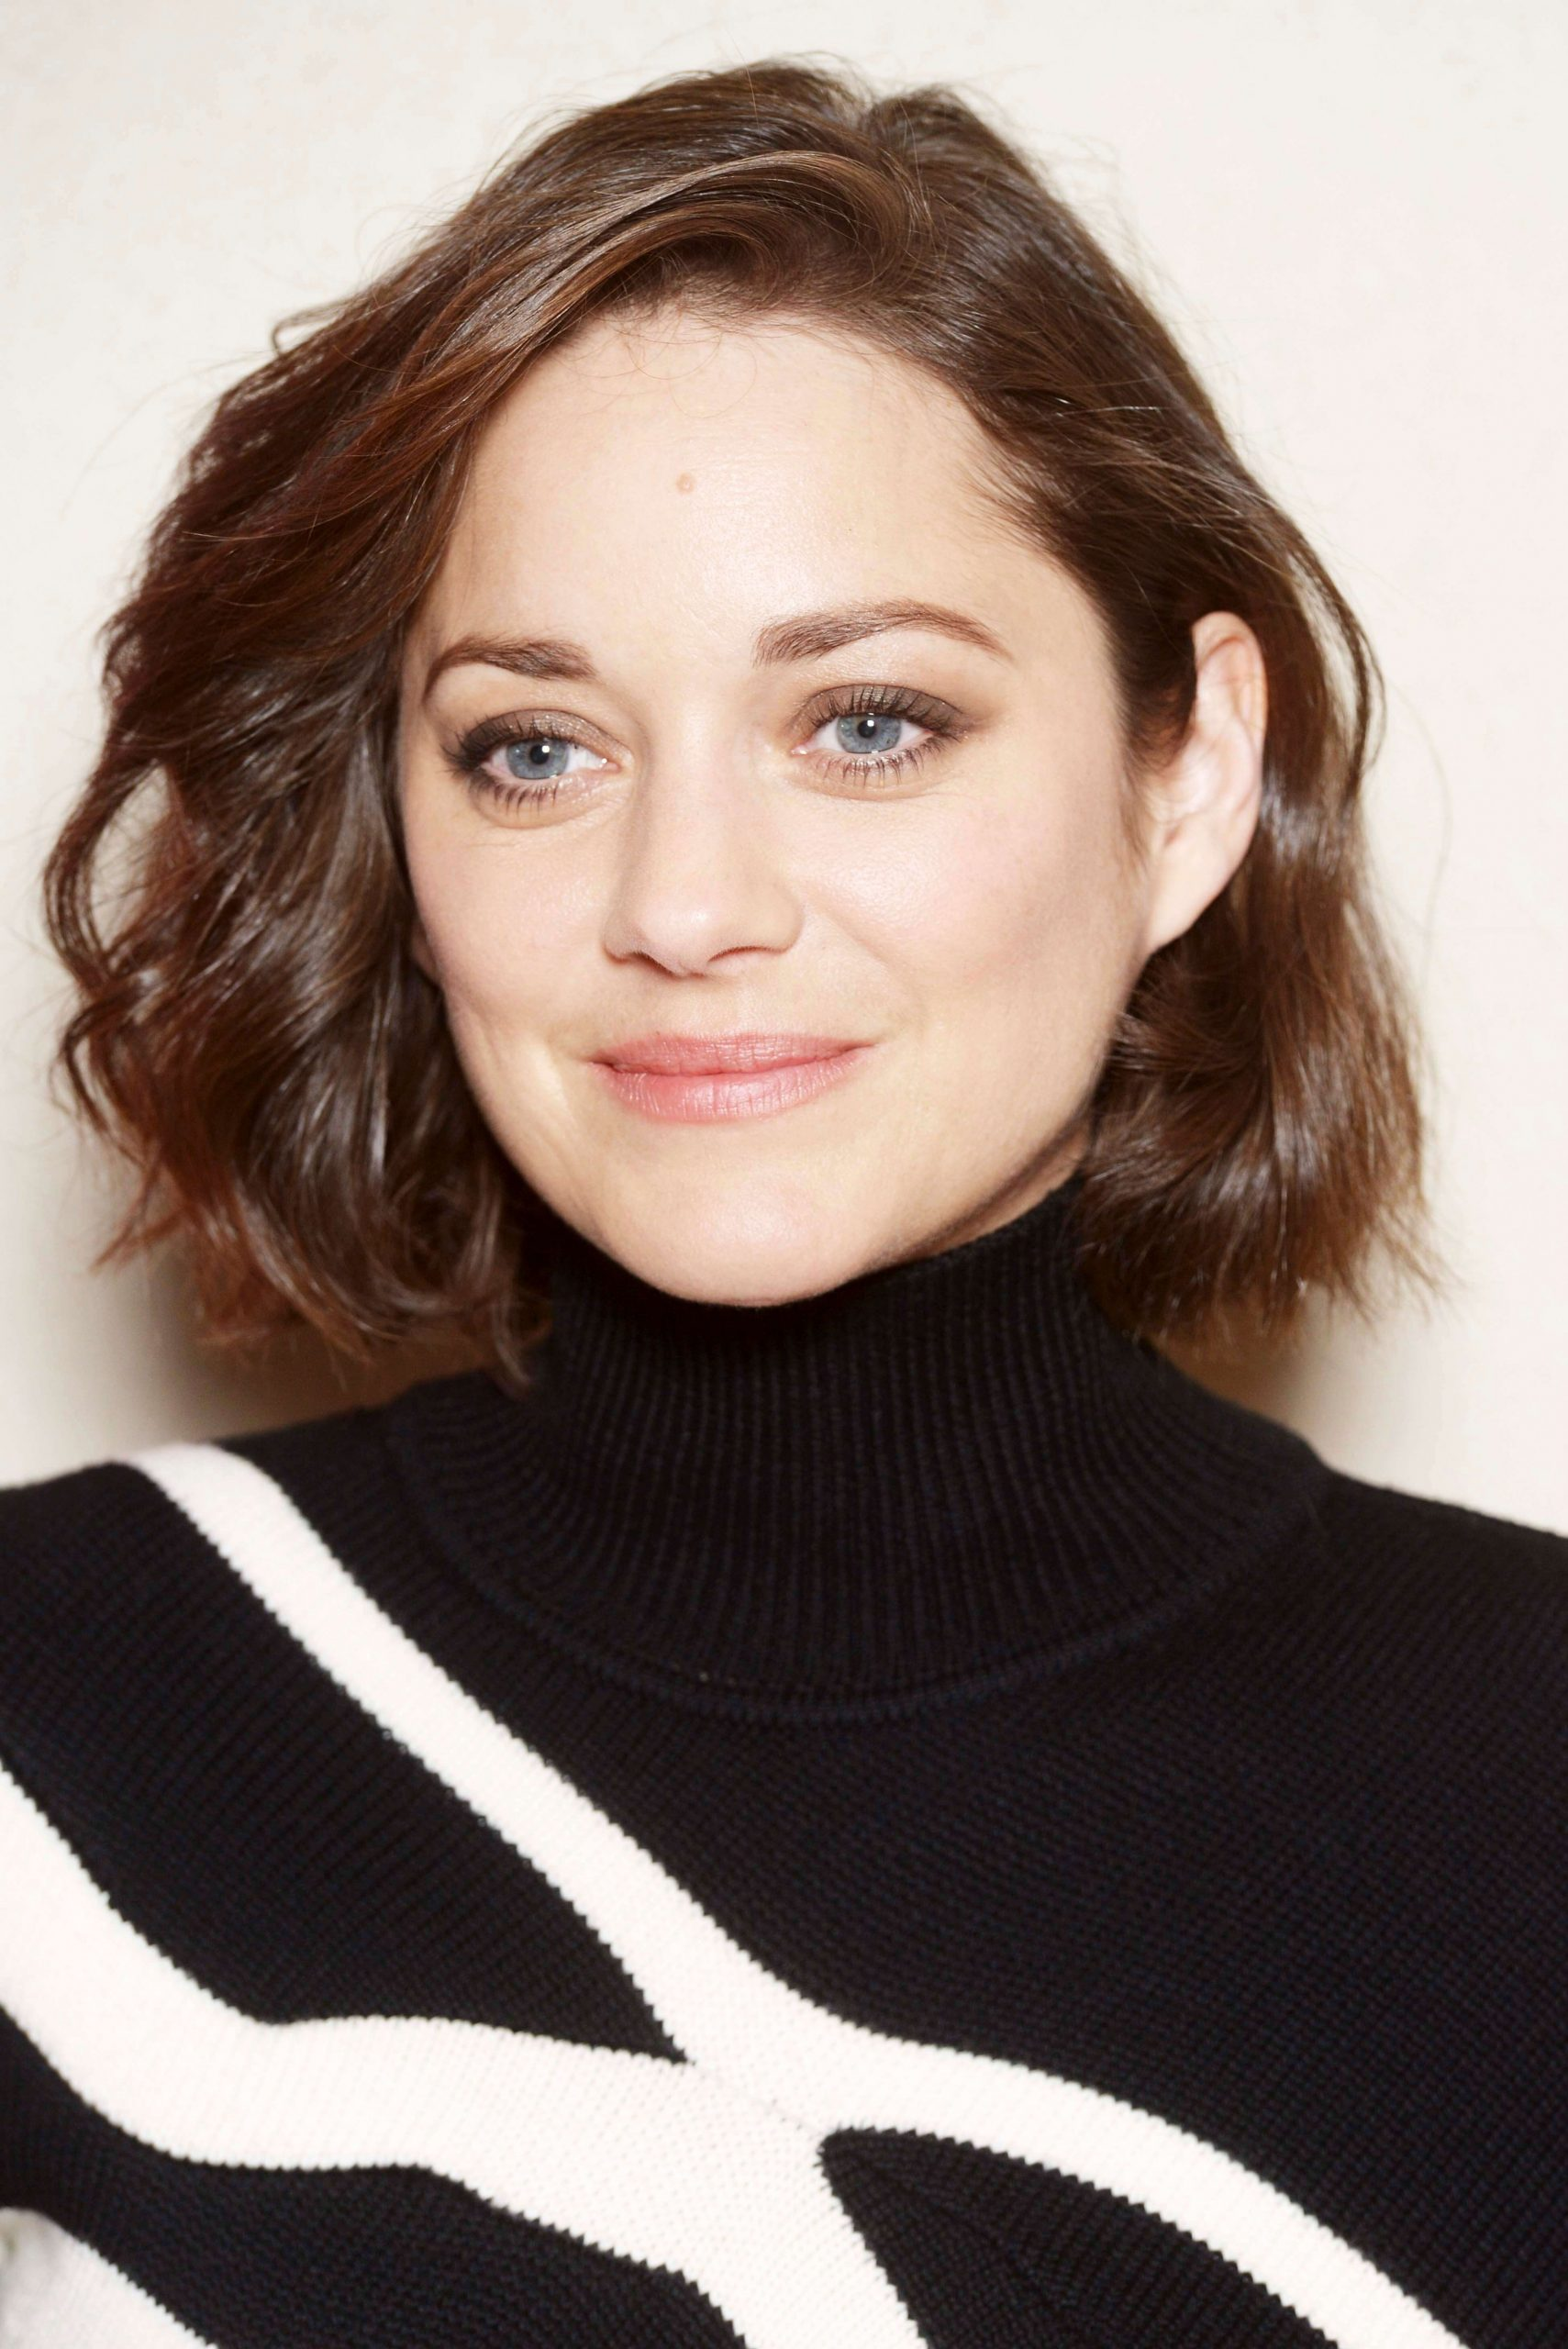 12 Flattering Short Hairstyles For Square Faces You Need To See Bob For Square Face